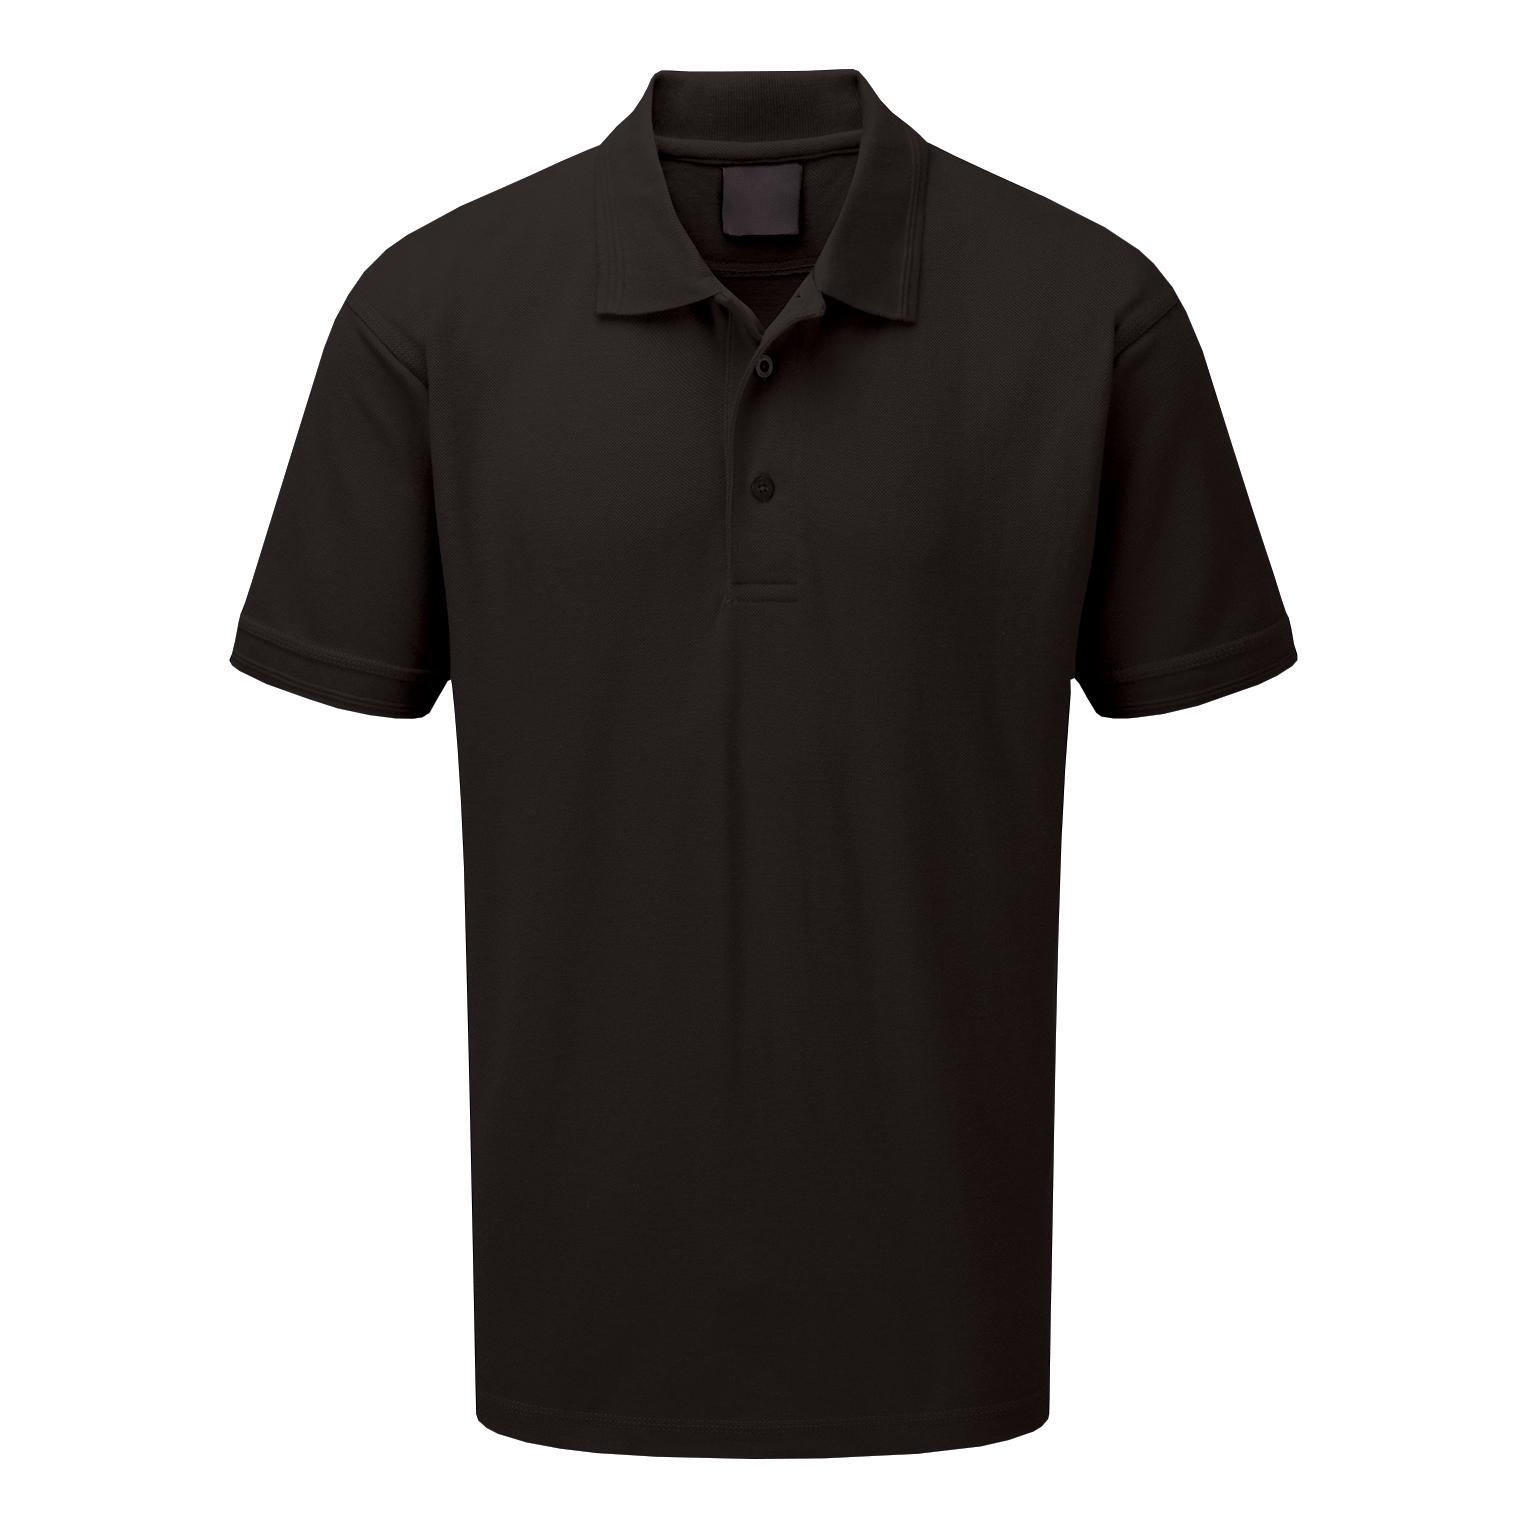 Supertouch Polo Shirt Classic Polycotton XXXLarge Black Ref 56CA6 *Approx 3 Day Leadtime*